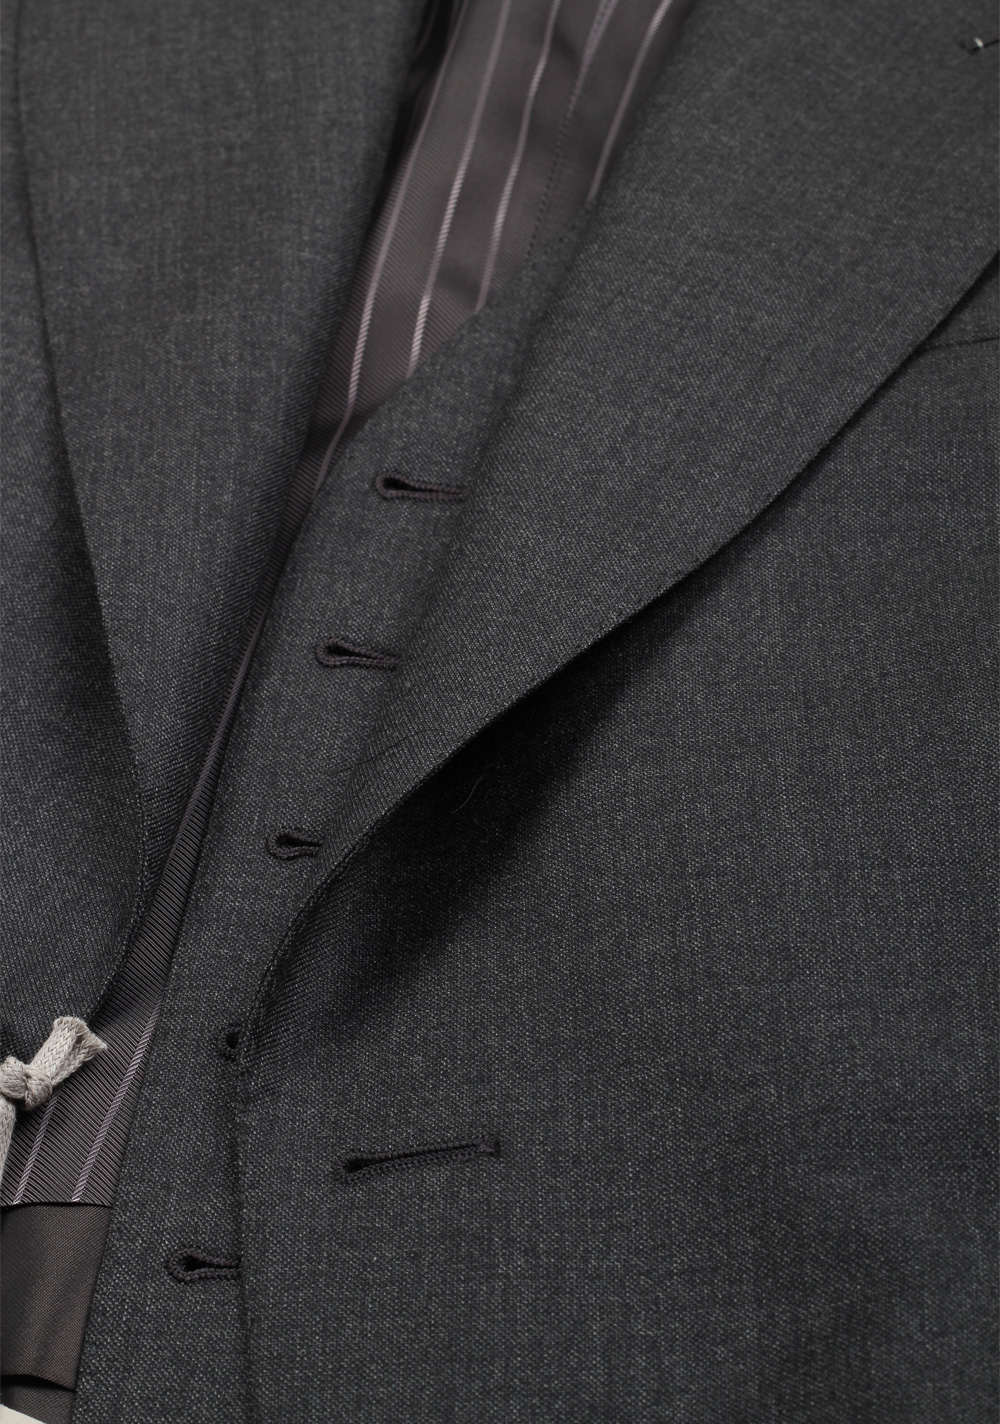 TOM FORD Windsor Gray 3 Piece Suit Size 46 / 36R U.S. Wool Fit A | Costume Limité